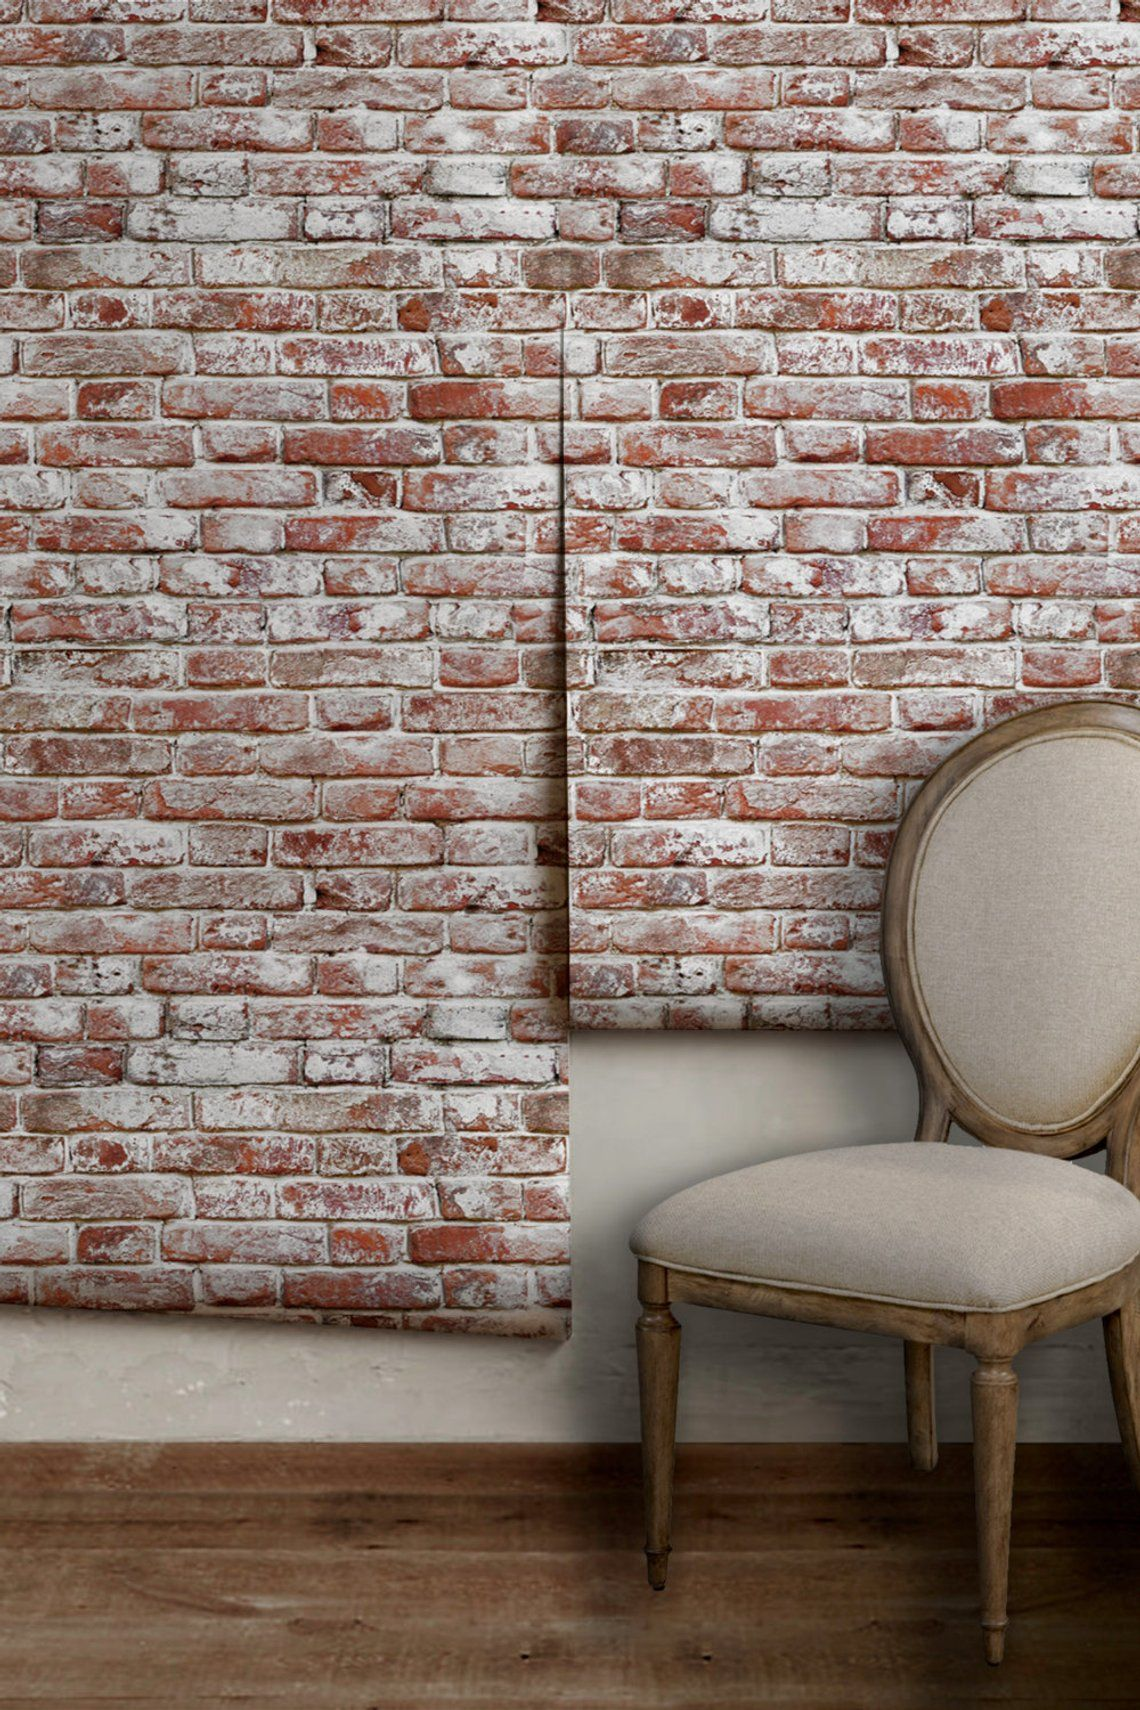 Whitewashed Antique Brick Peel N Stick Or Traditional Wallpaper Made In The Usa Vinyl Free Non Toxic Faux Brick Walls Antique Brick Brick Wallpaper